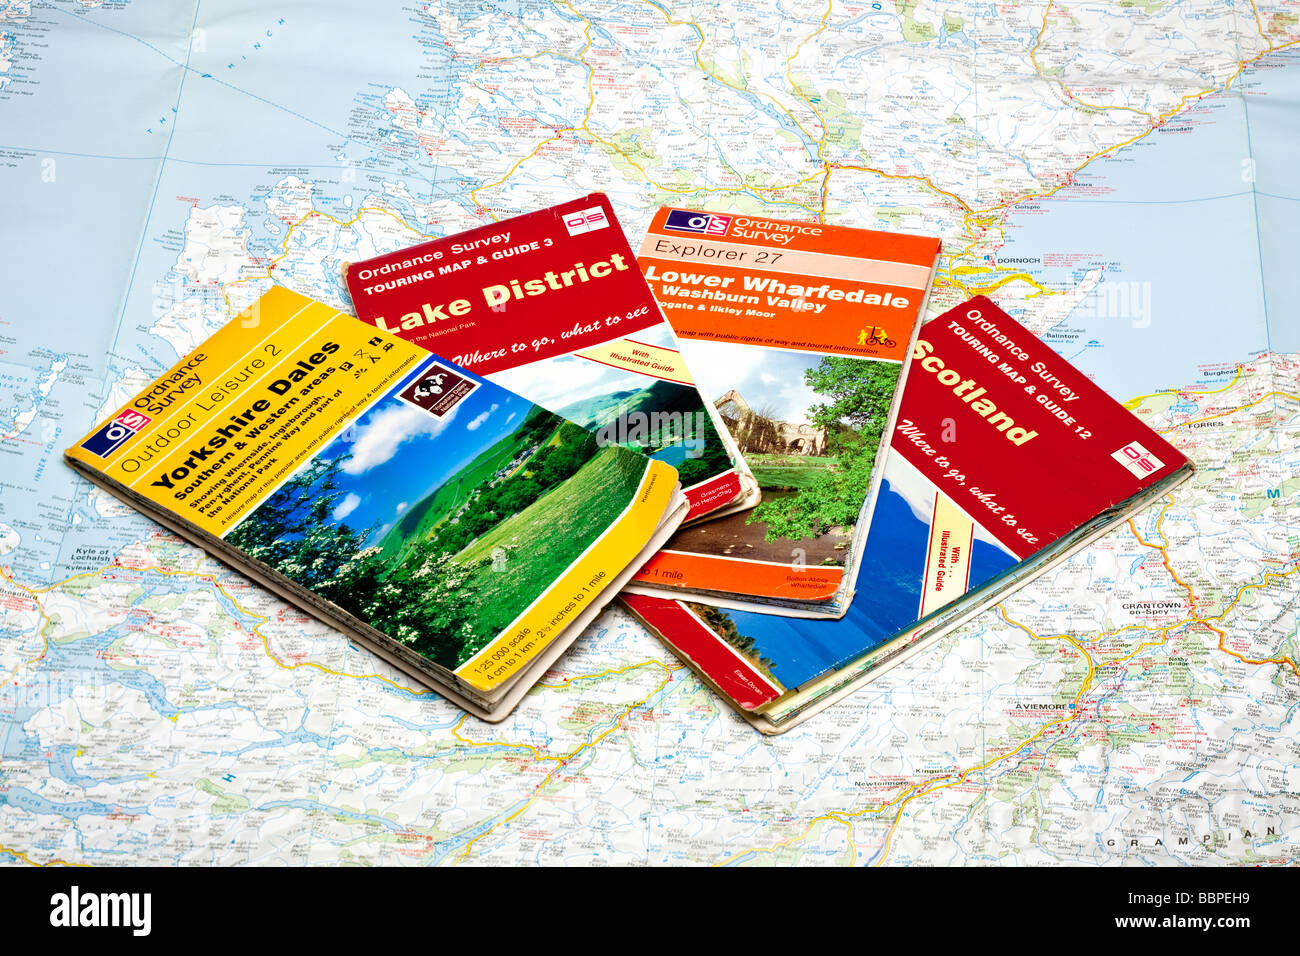 Set of four Ordnance Surveys maps on a map of Scotland - Stock Image